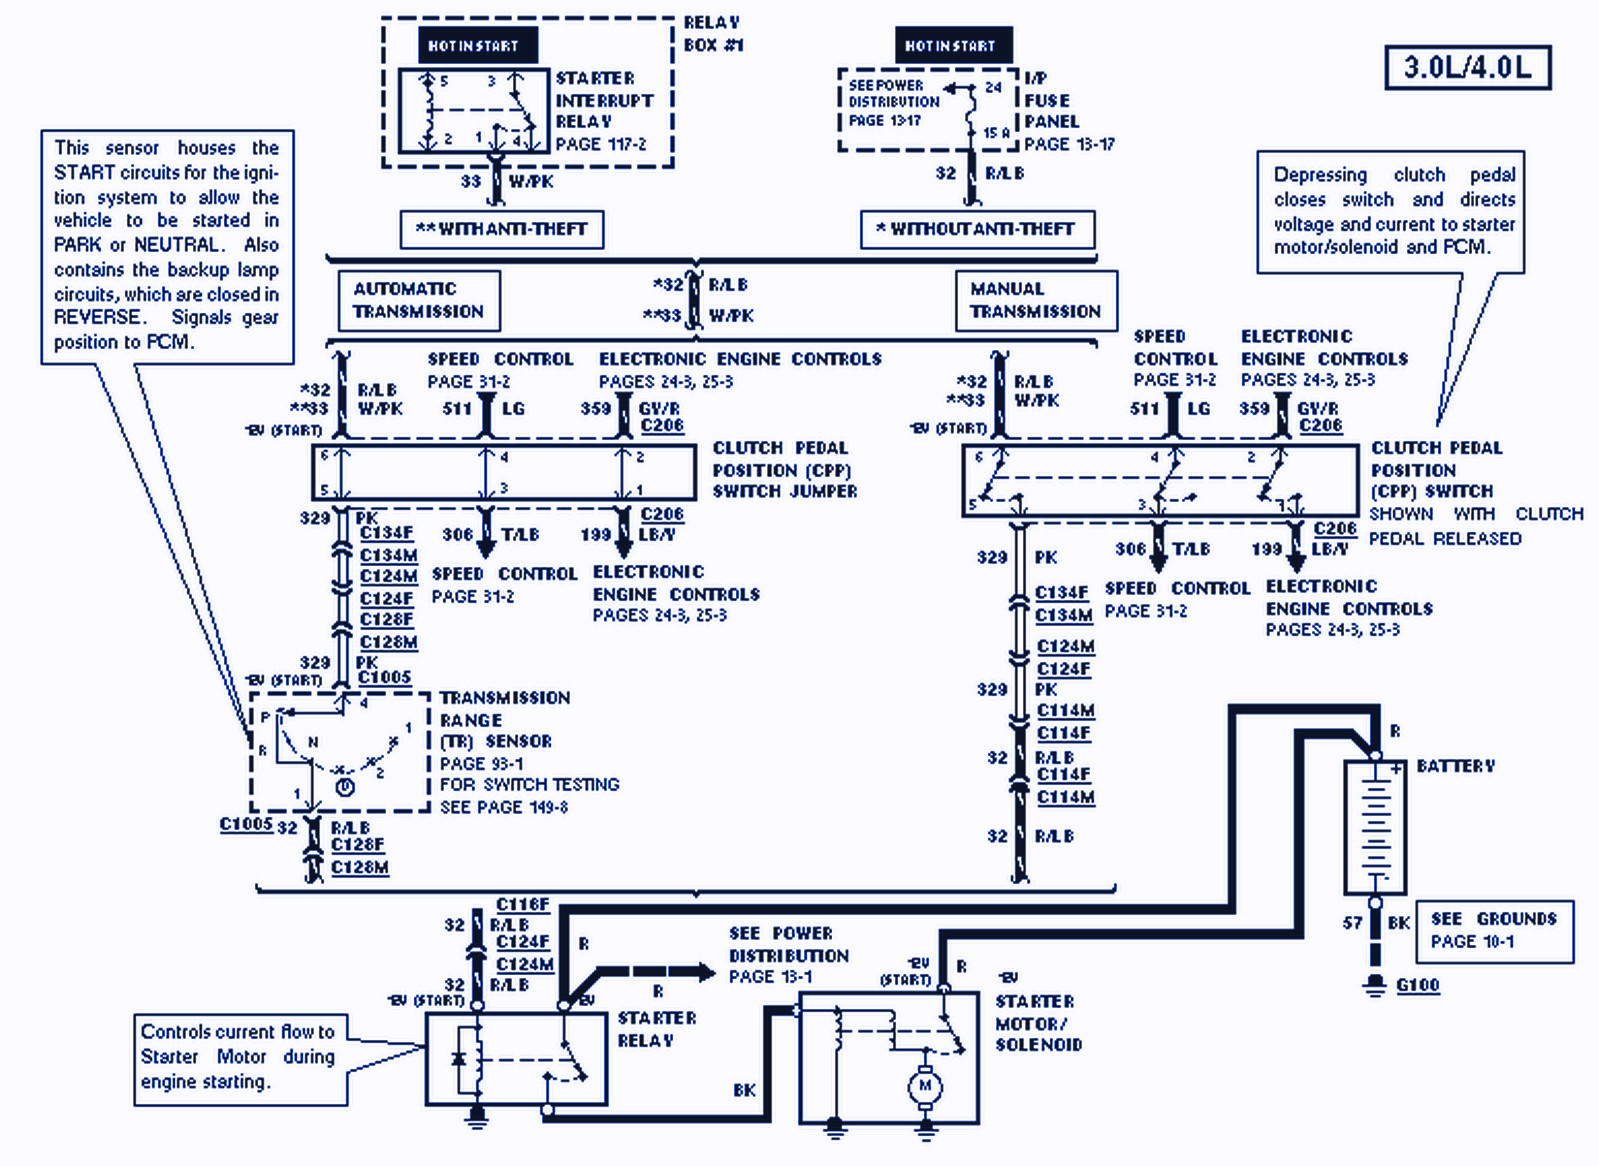 hight resolution of 1995 ford e350 wiring diagram simple wiring diagram rh david huggett co uk ford ranger 1999